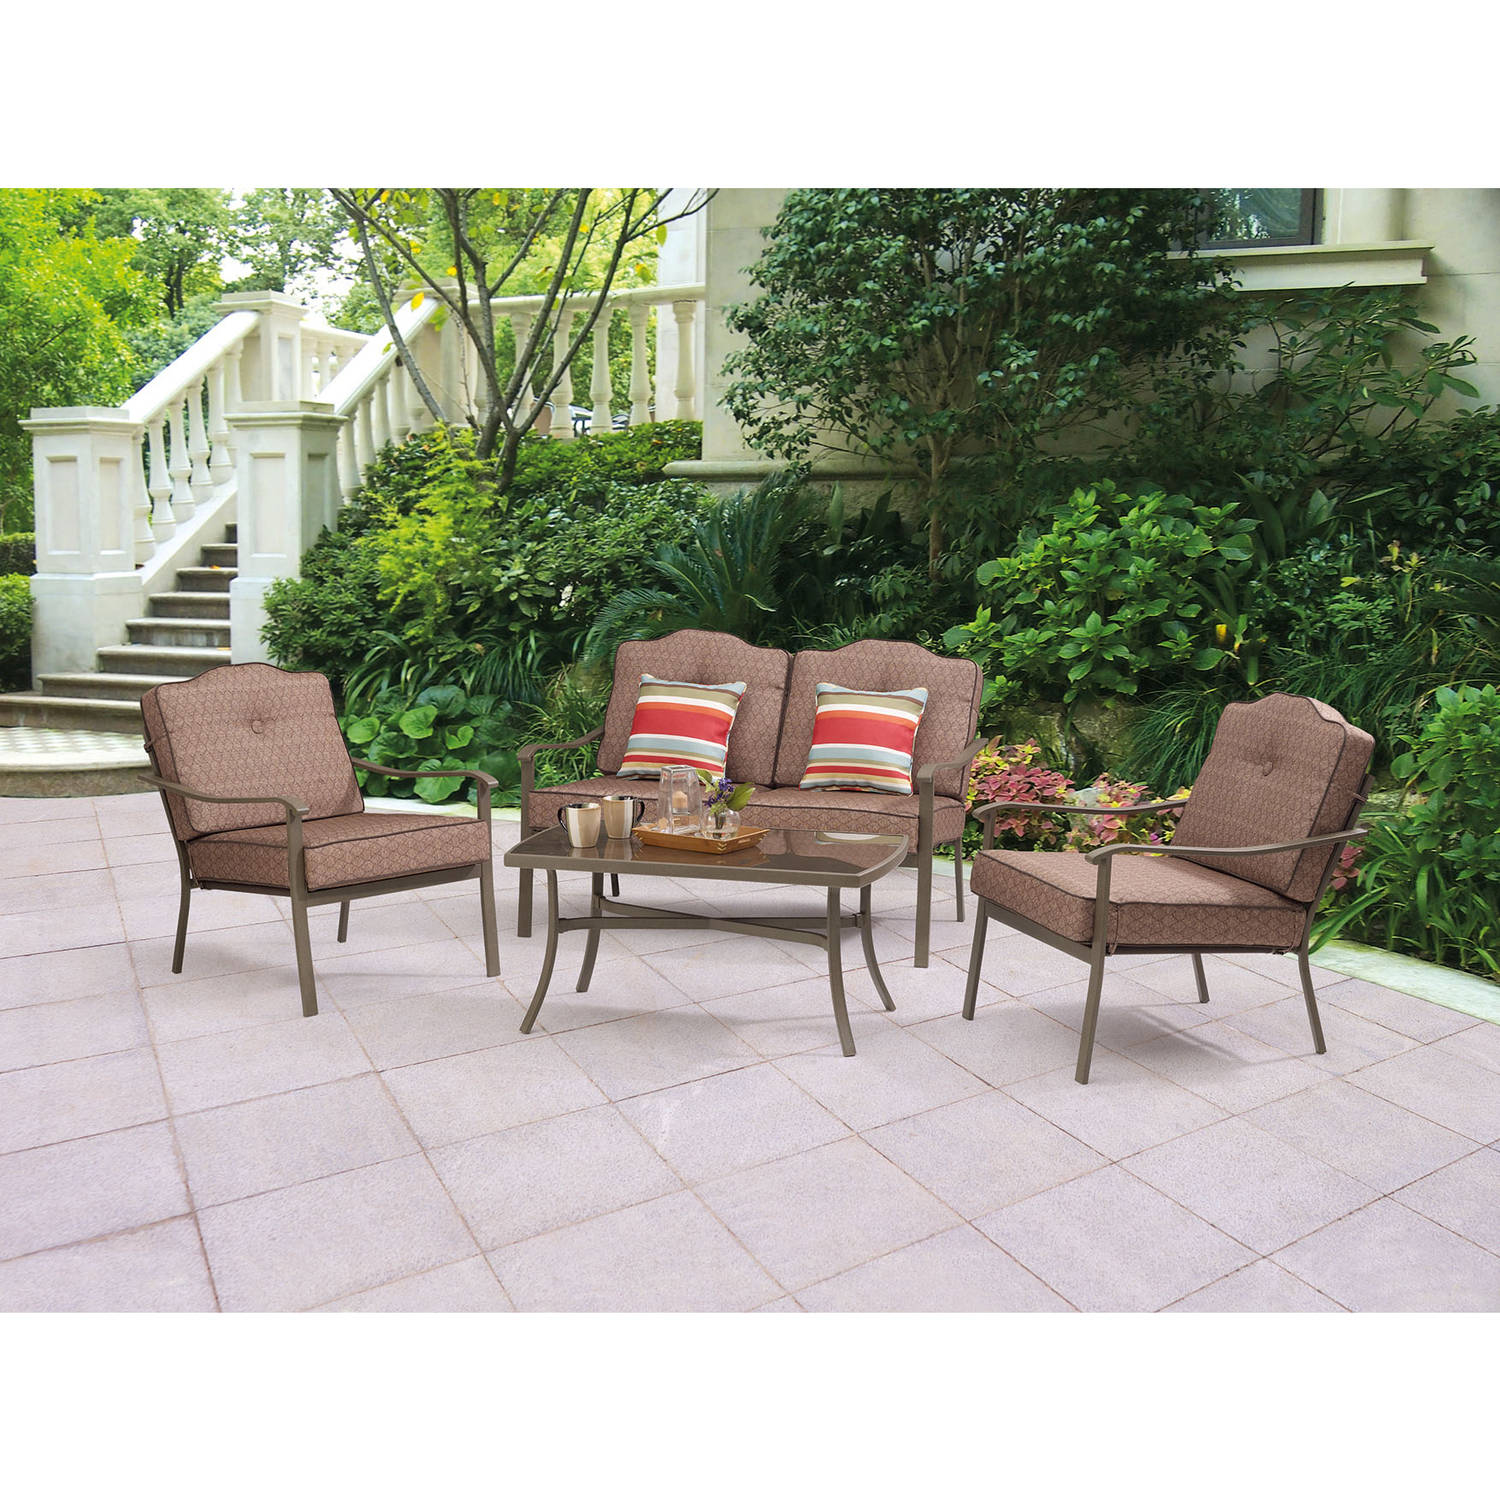 Mainstays Woodland Hills 4-Piece Chat Set